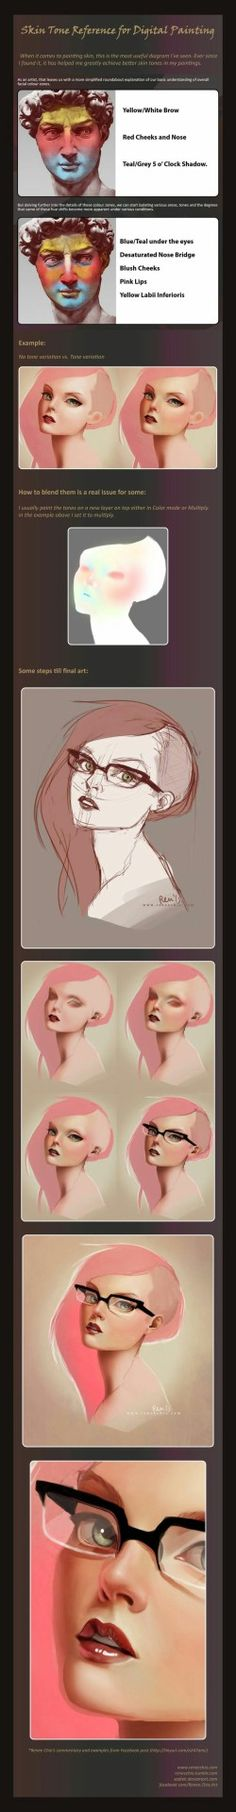 Skin Tone Reference For Digital Painting by: Renee Chio